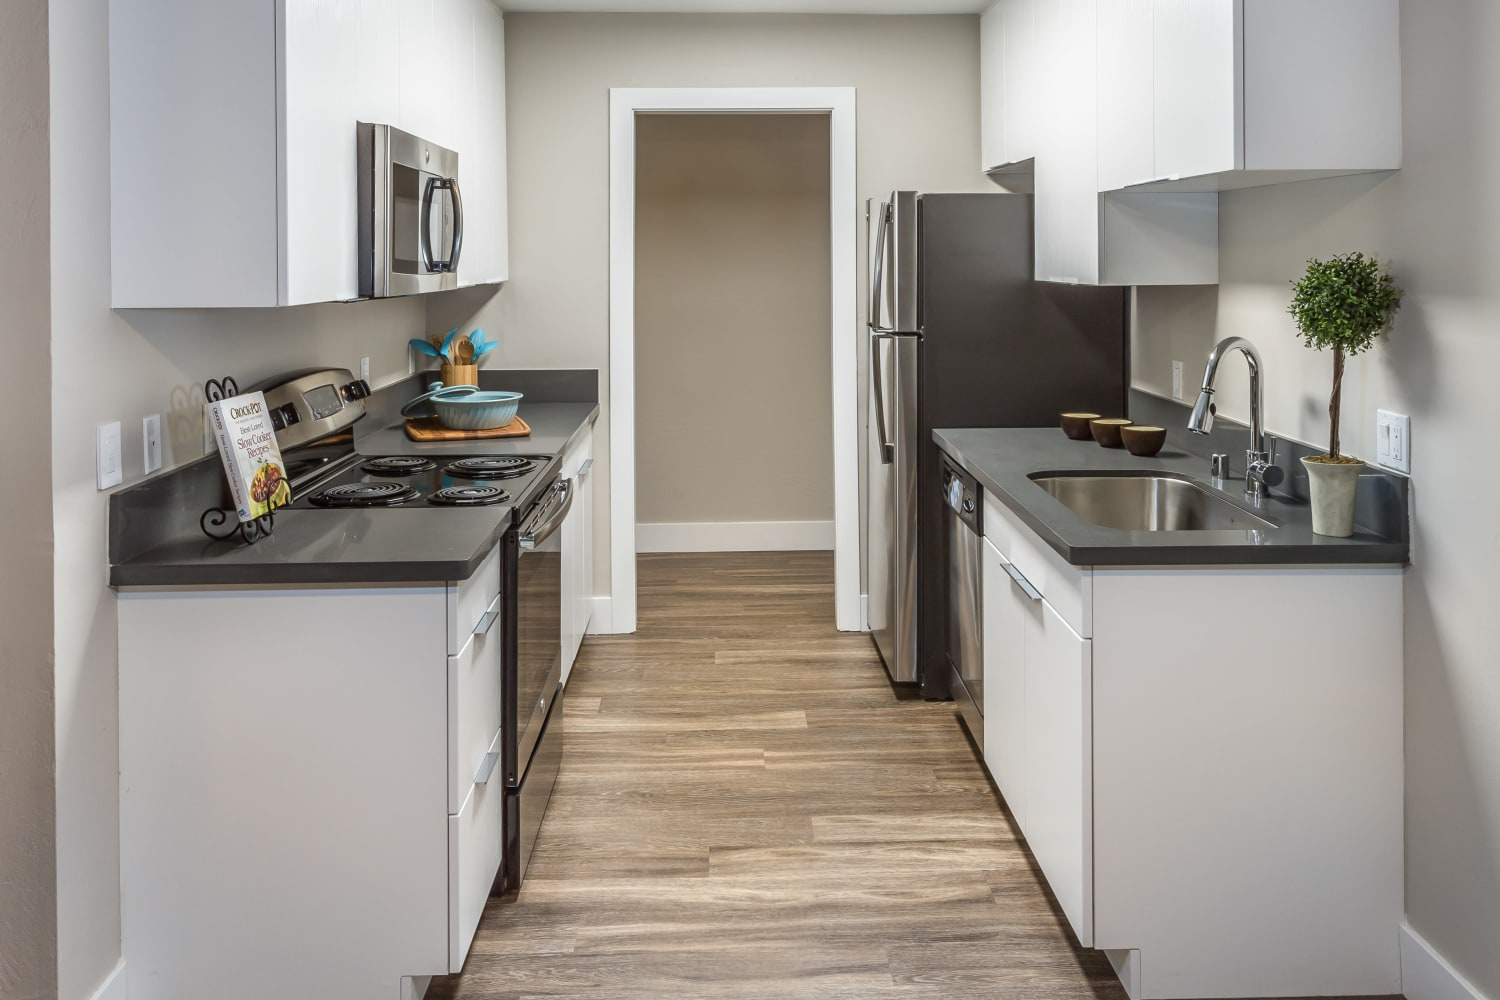 Harbor Cove Apartments in Foster City, California, offer clean and bright kitchens